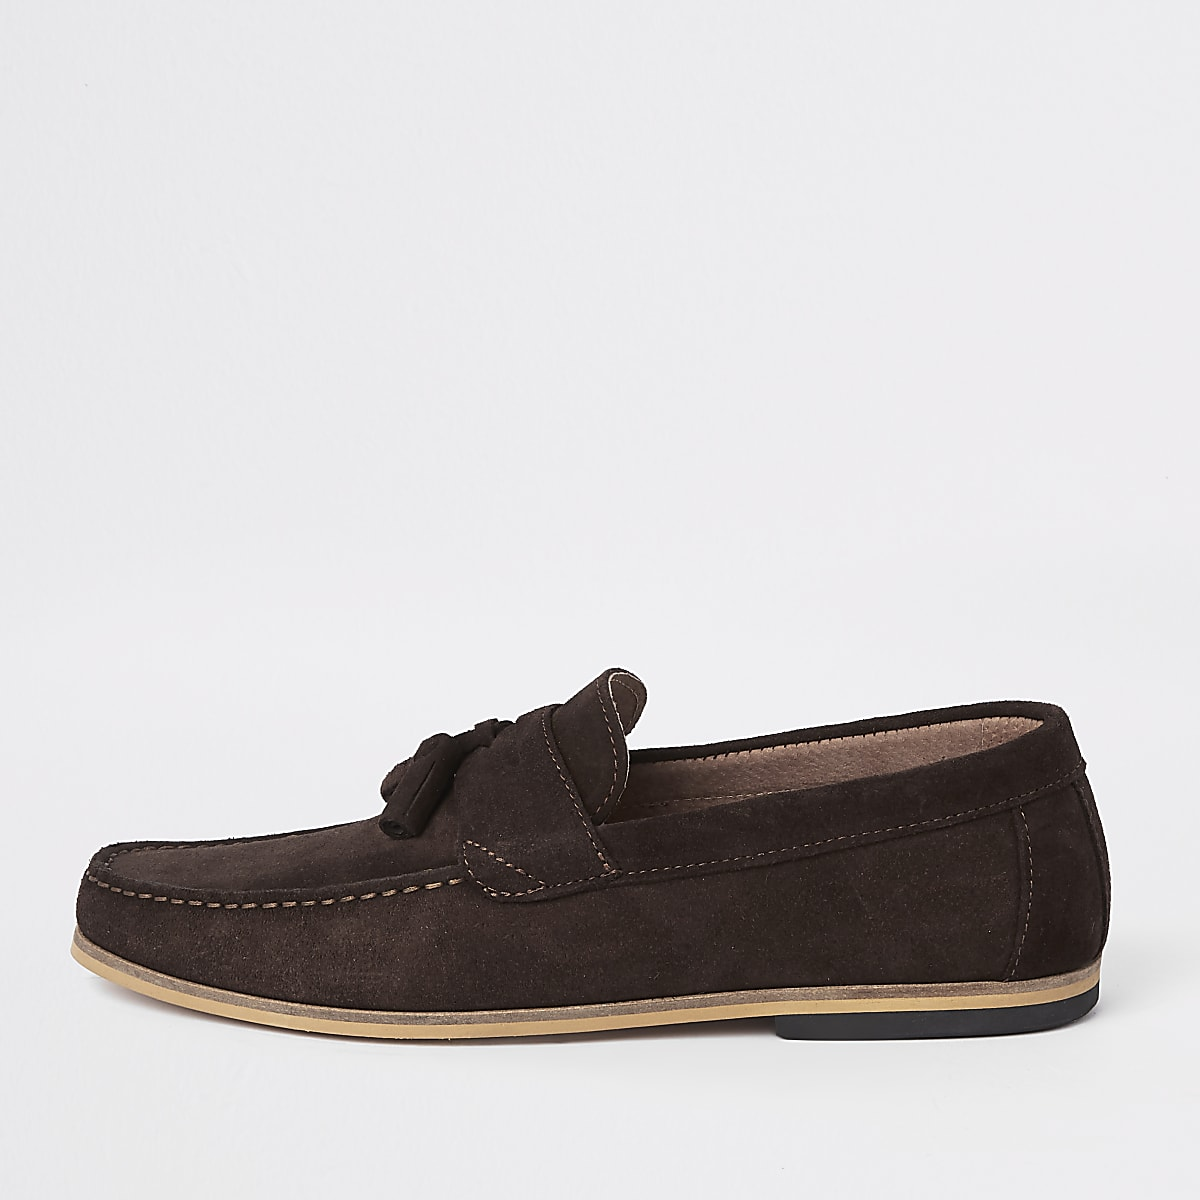 Brown suede tassel front loafers